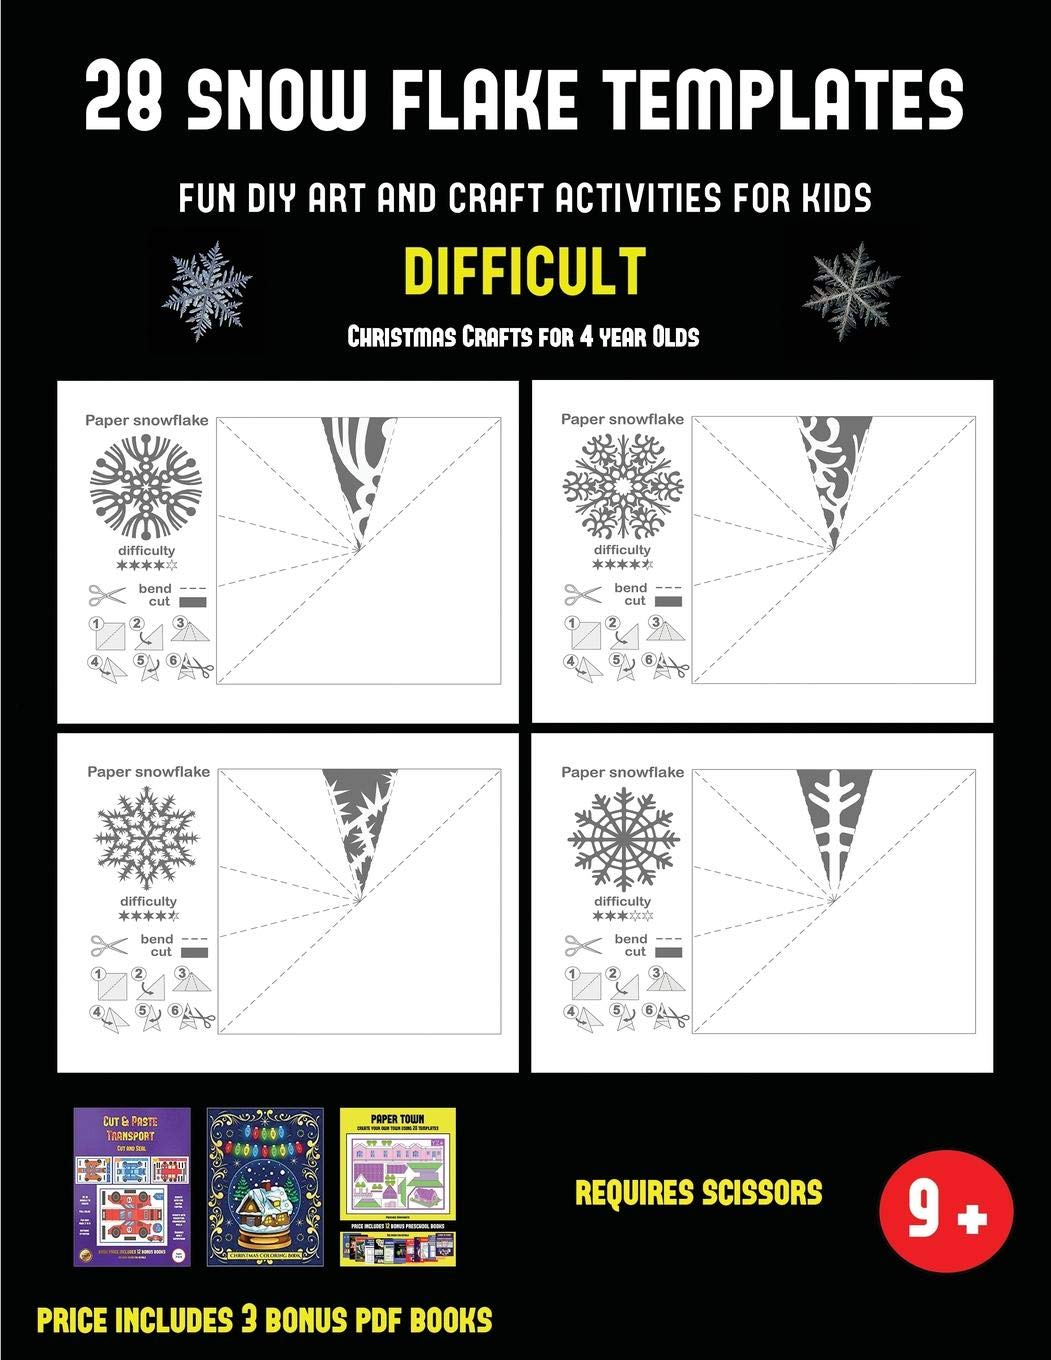 Christmas Crafts For 1 Year Olds.Buy Christmas Crafts For 4 Year Olds 28 Snowflake Templates